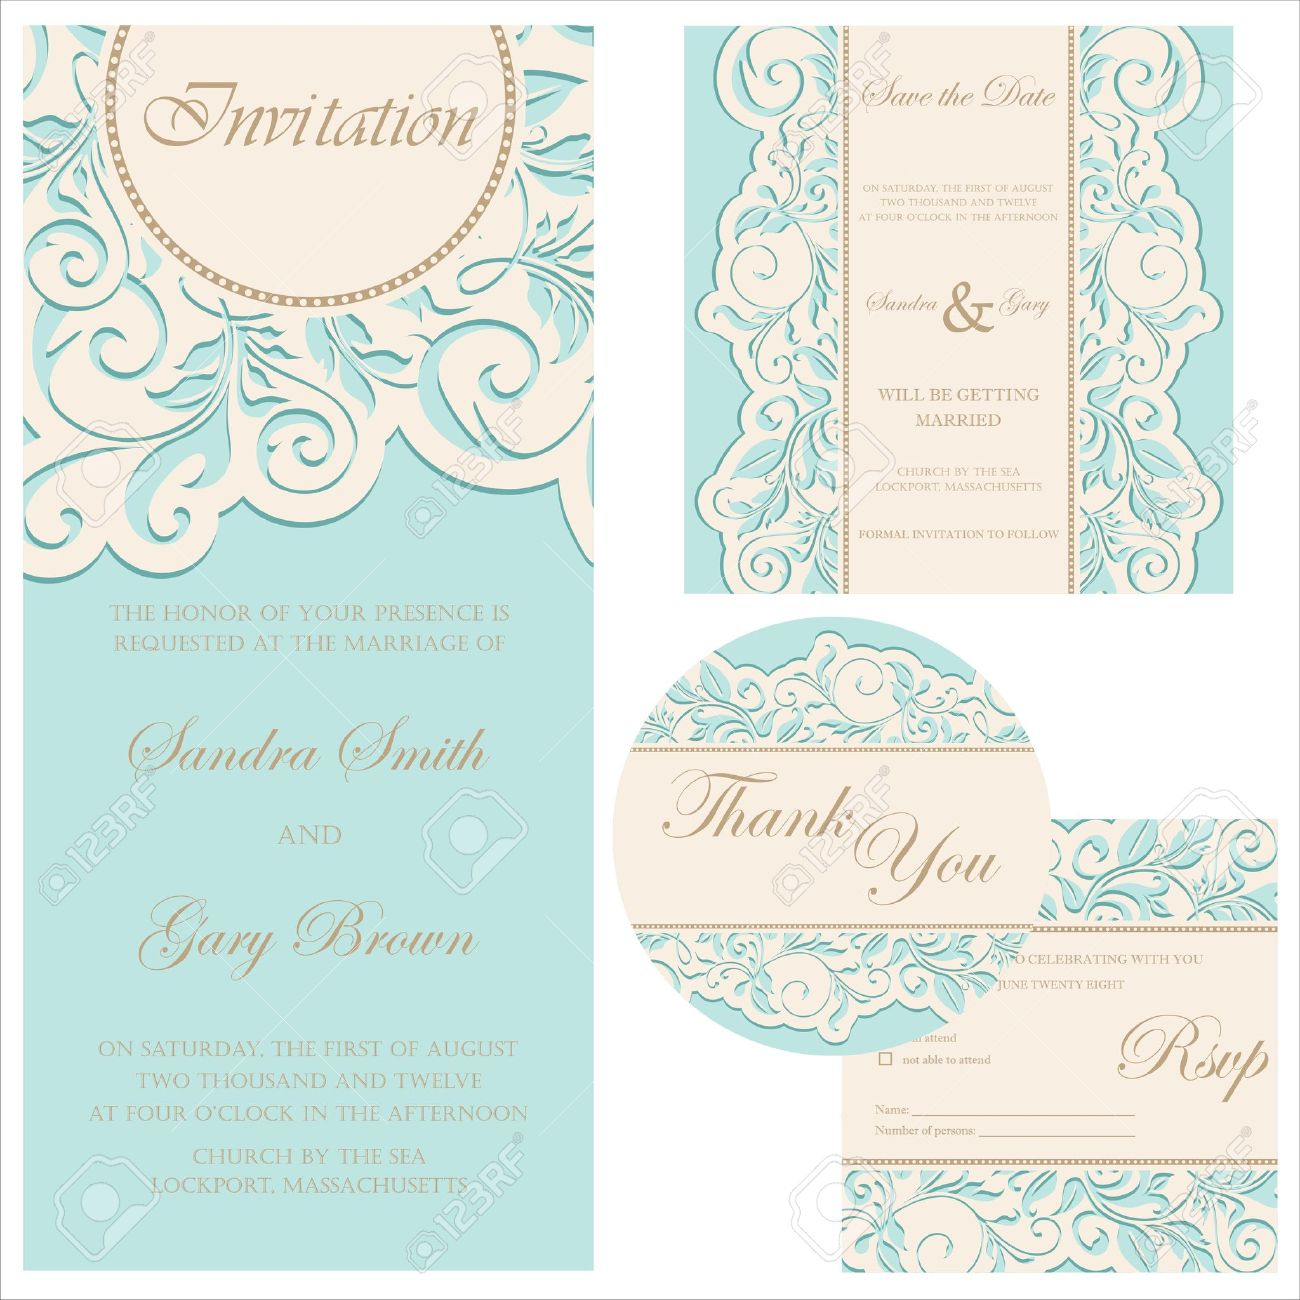 Wedding Invitation Set Thank You Card Save The Date RSVP